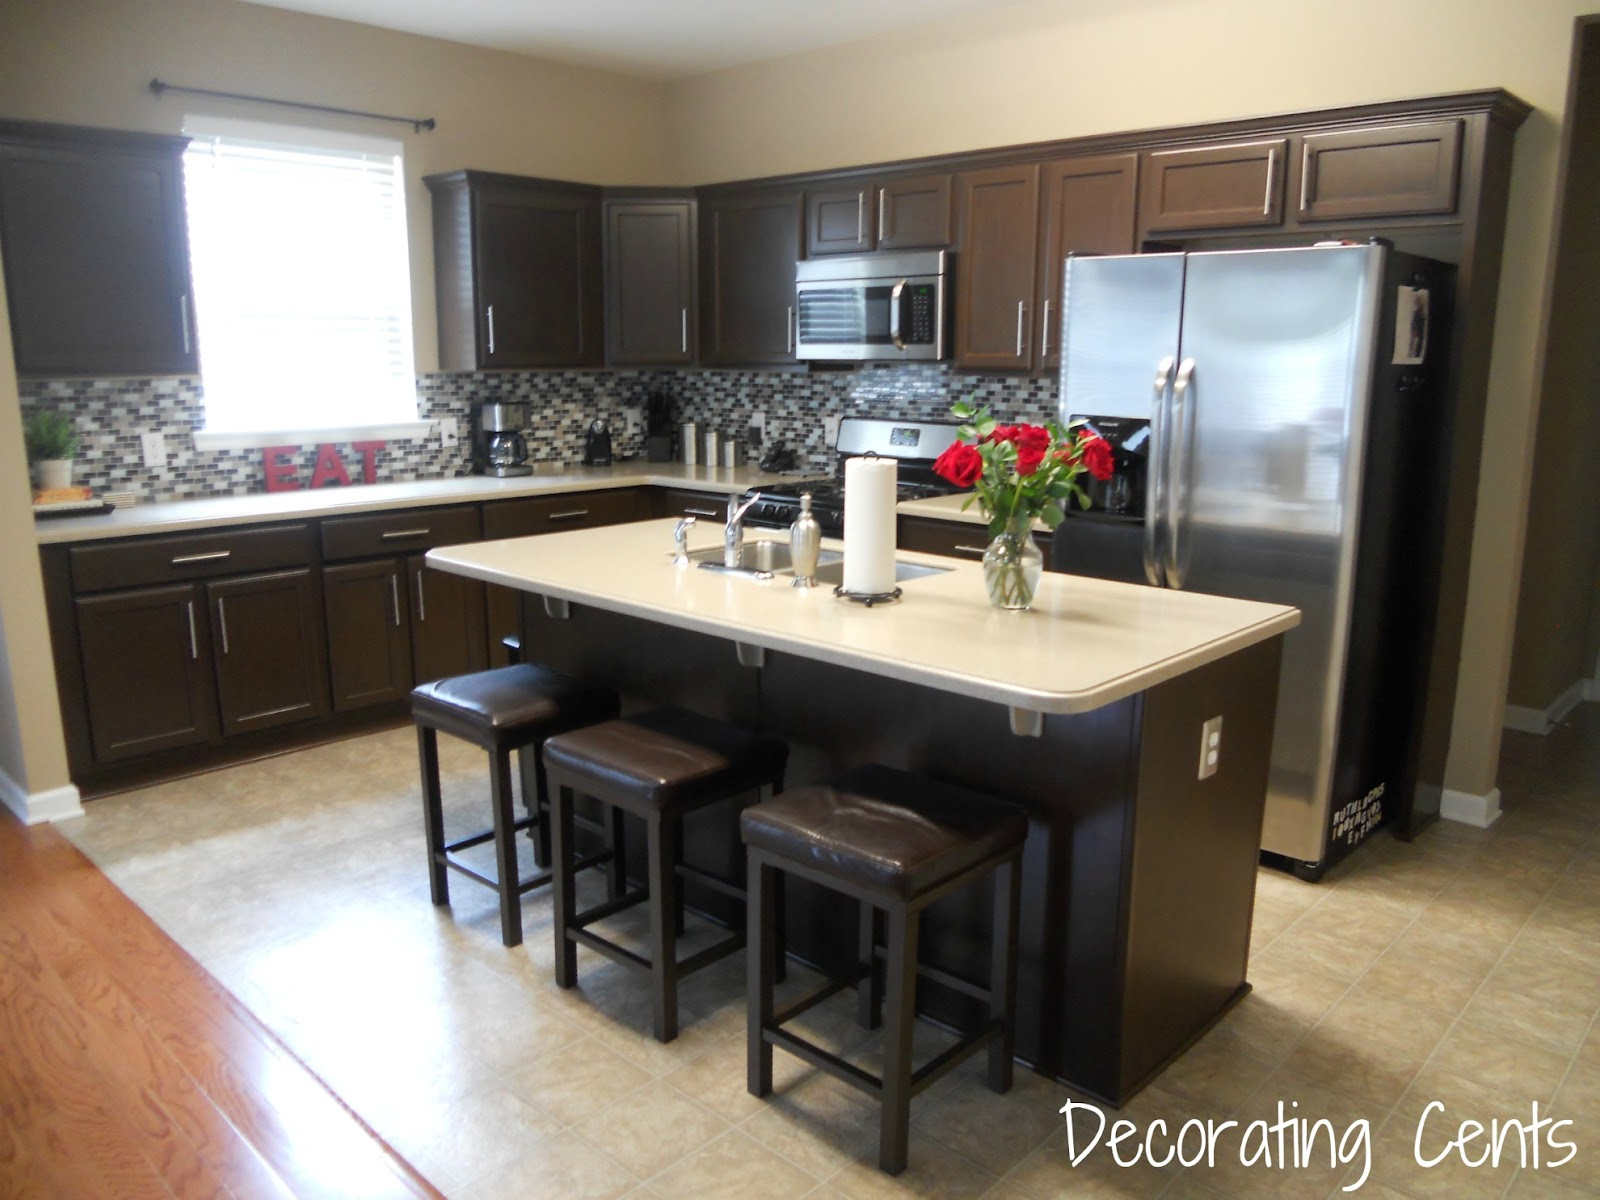 decorating cents kitchen cabinets revealed. Black Bedroom Furniture Sets. Home Design Ideas